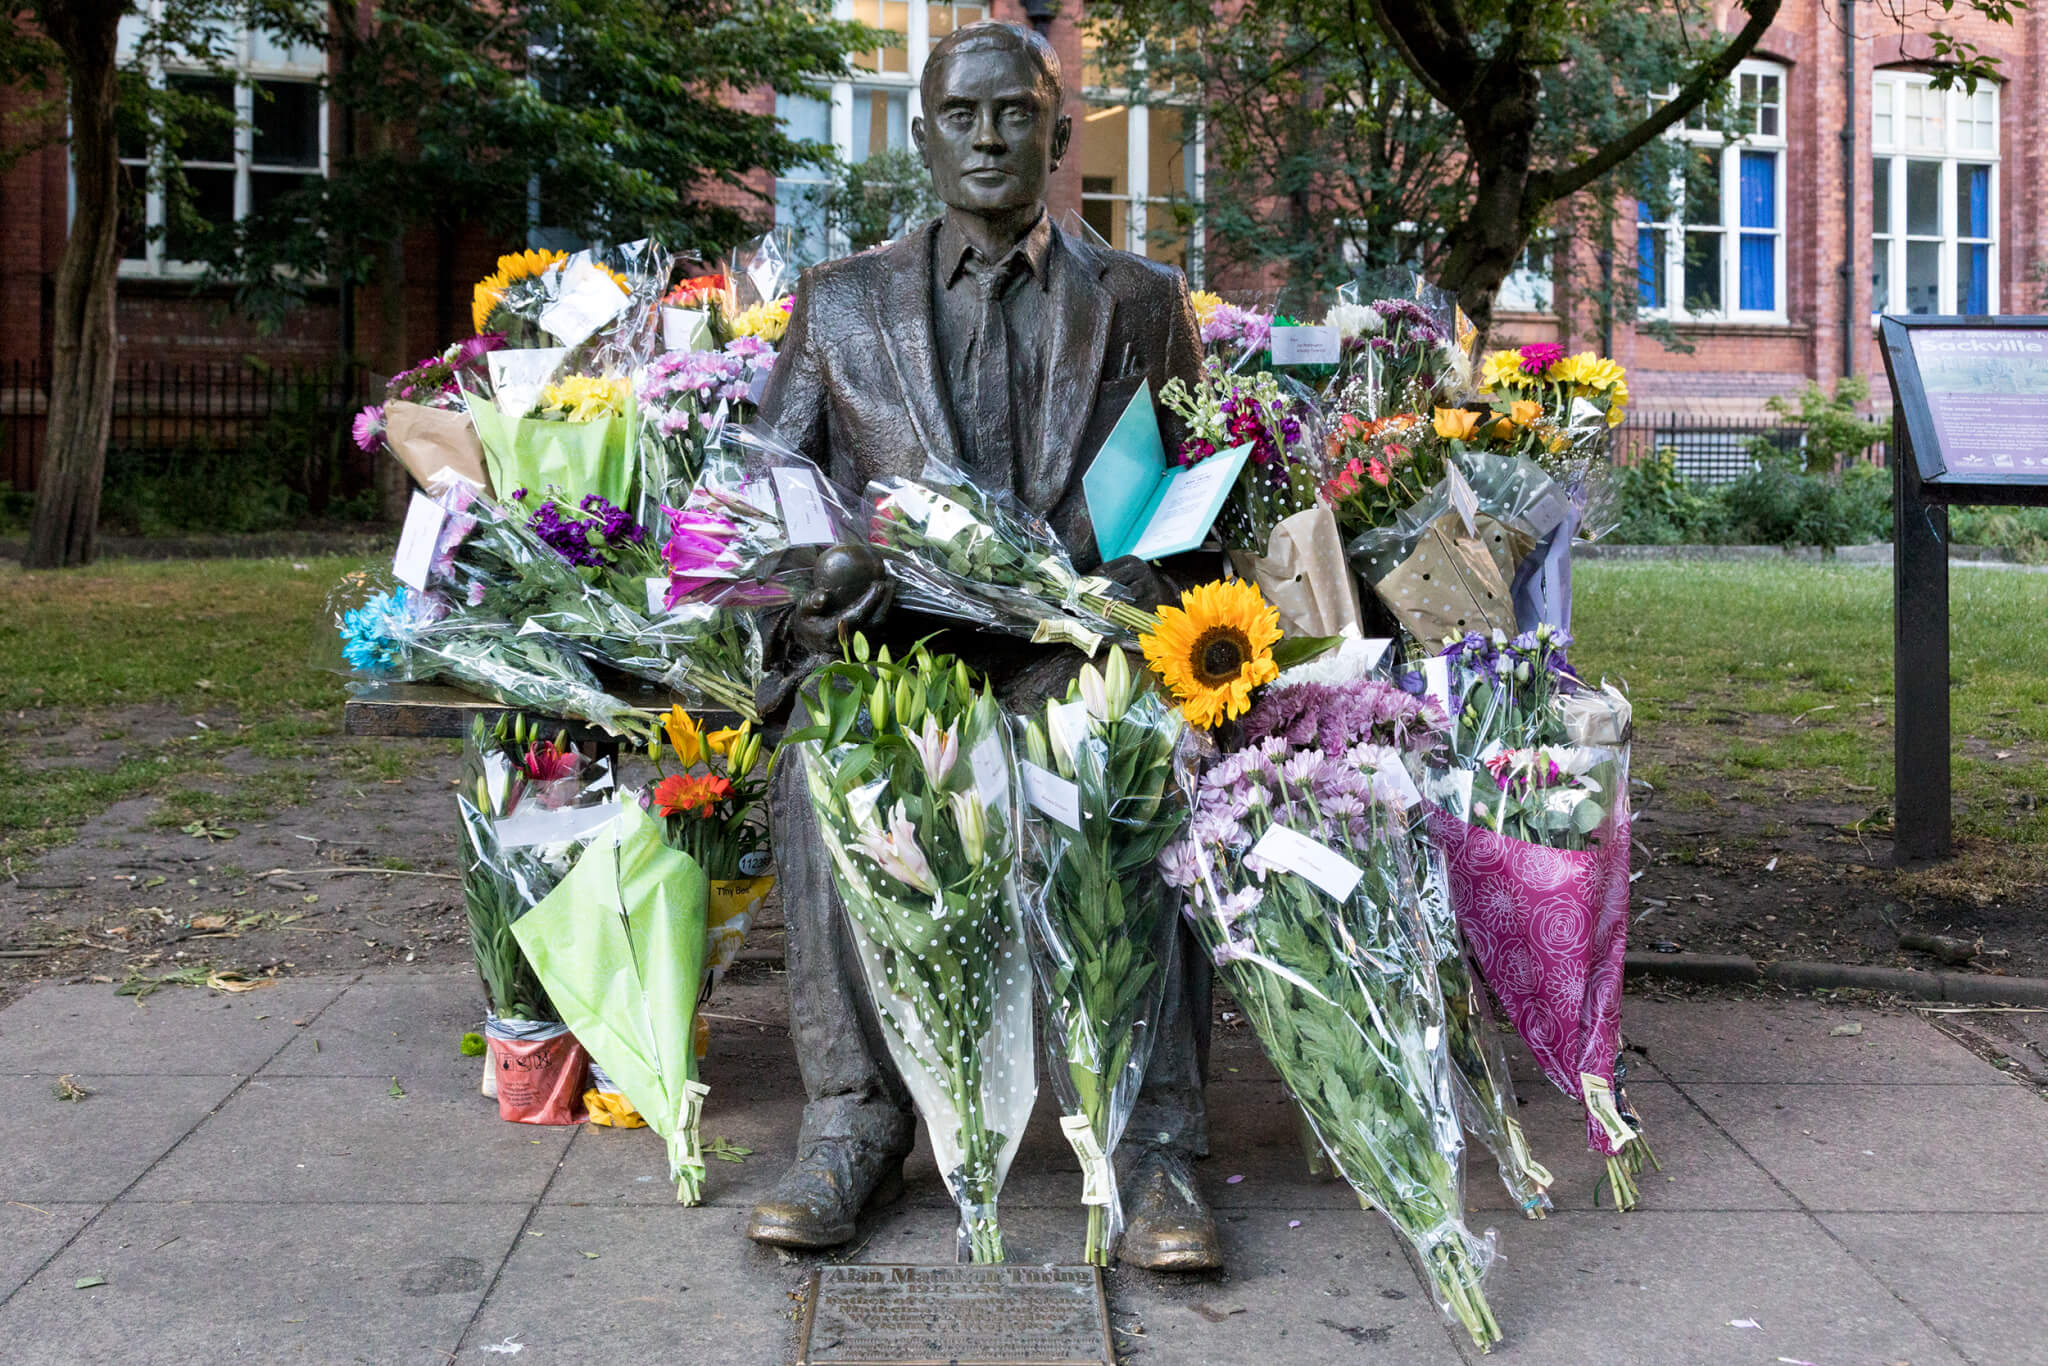 A statue of Alan Turing in Sackville gardens Manchester, surrounded by bouquets of flowers